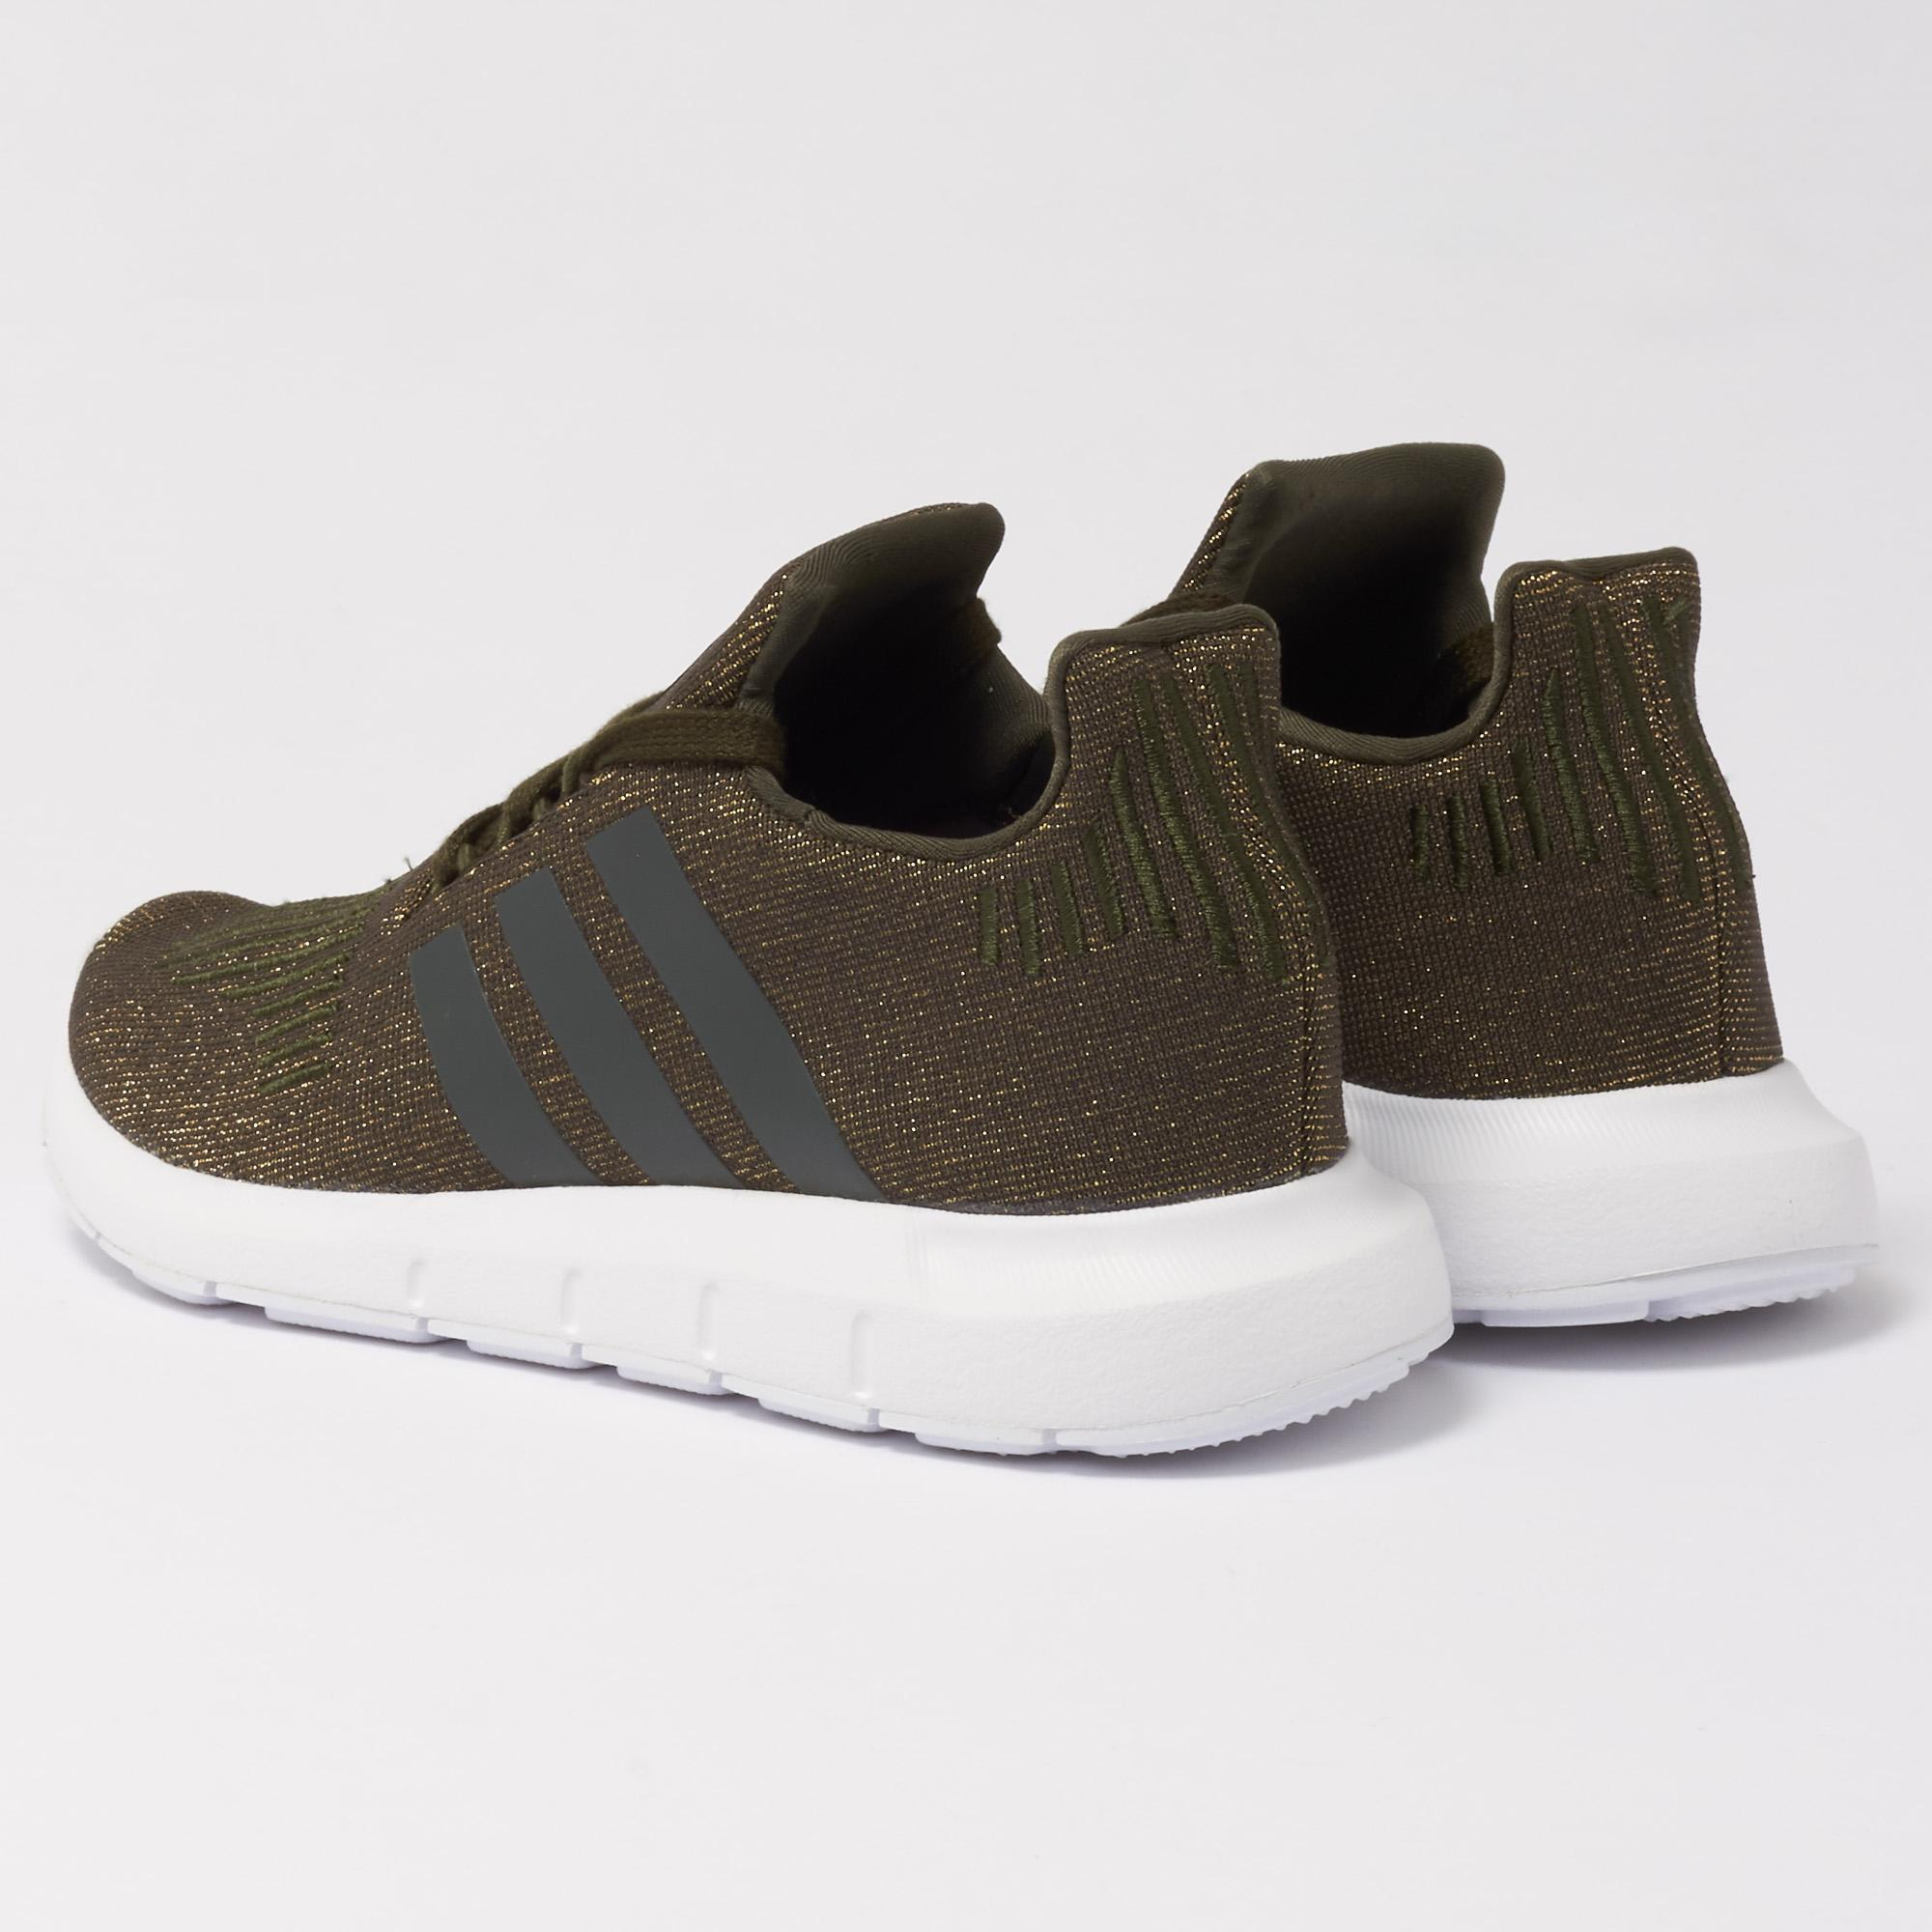 a033869cfc adidas Originals Wmns Swift Run Trainers - Night Cargo in Green for ...